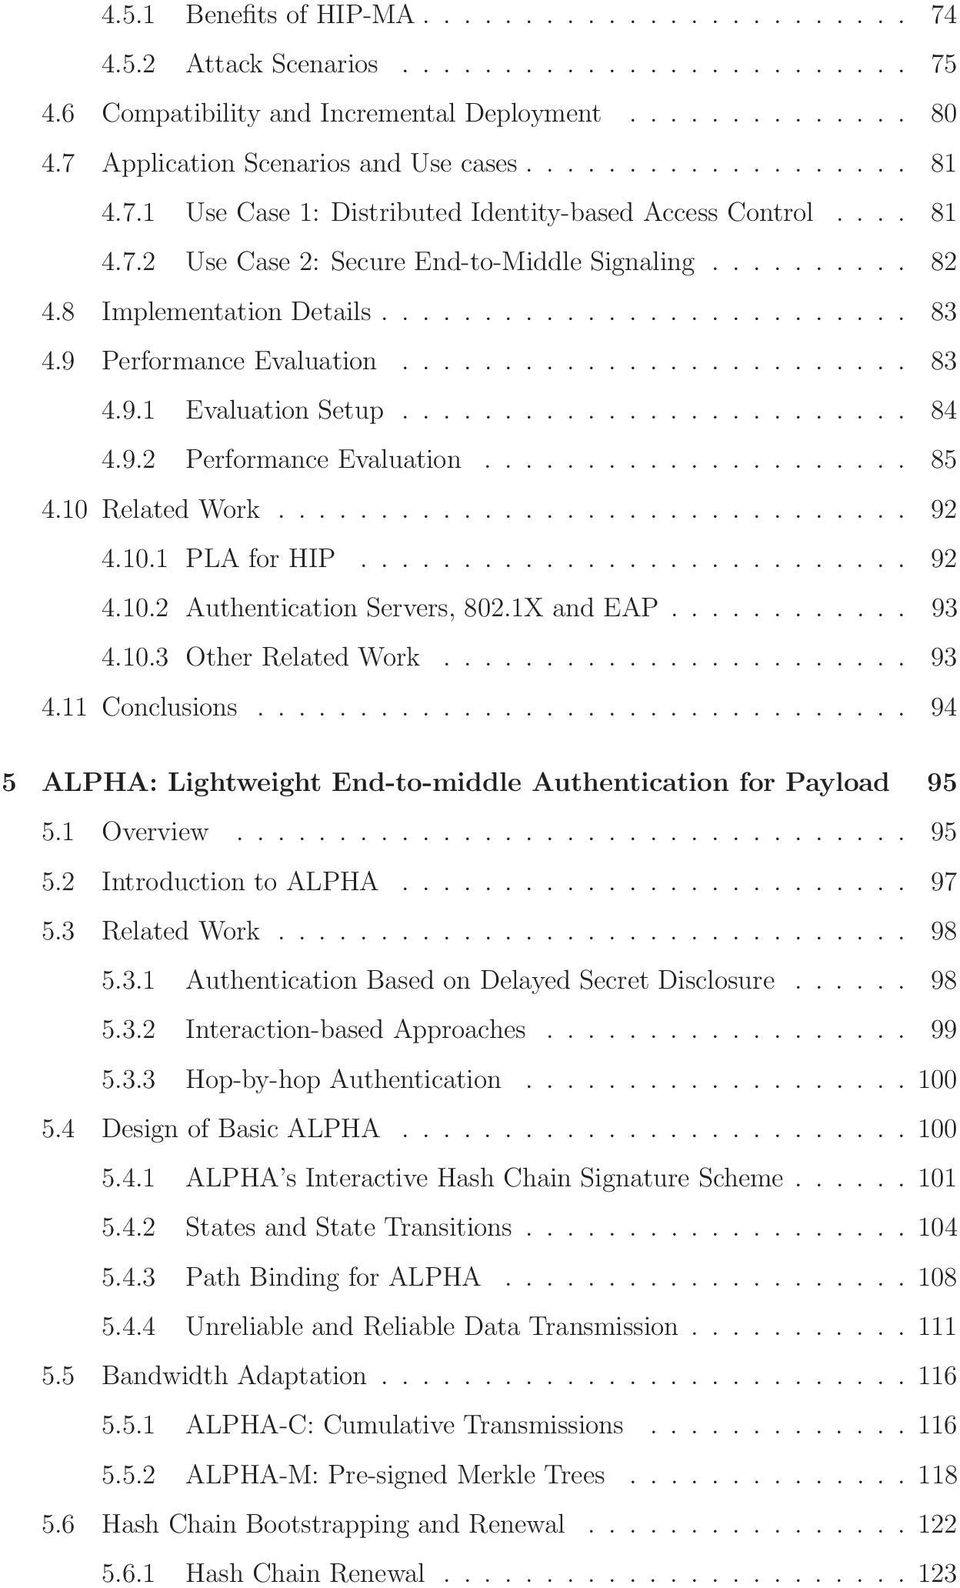 10RelatedWork... 92 4.10.1 PLAforHIP... 92 4.10.2 AuthenticationServers,802.1XandEAP... 93 4.10.3 OtherRelatedWork... 93 4.11Conclusions.